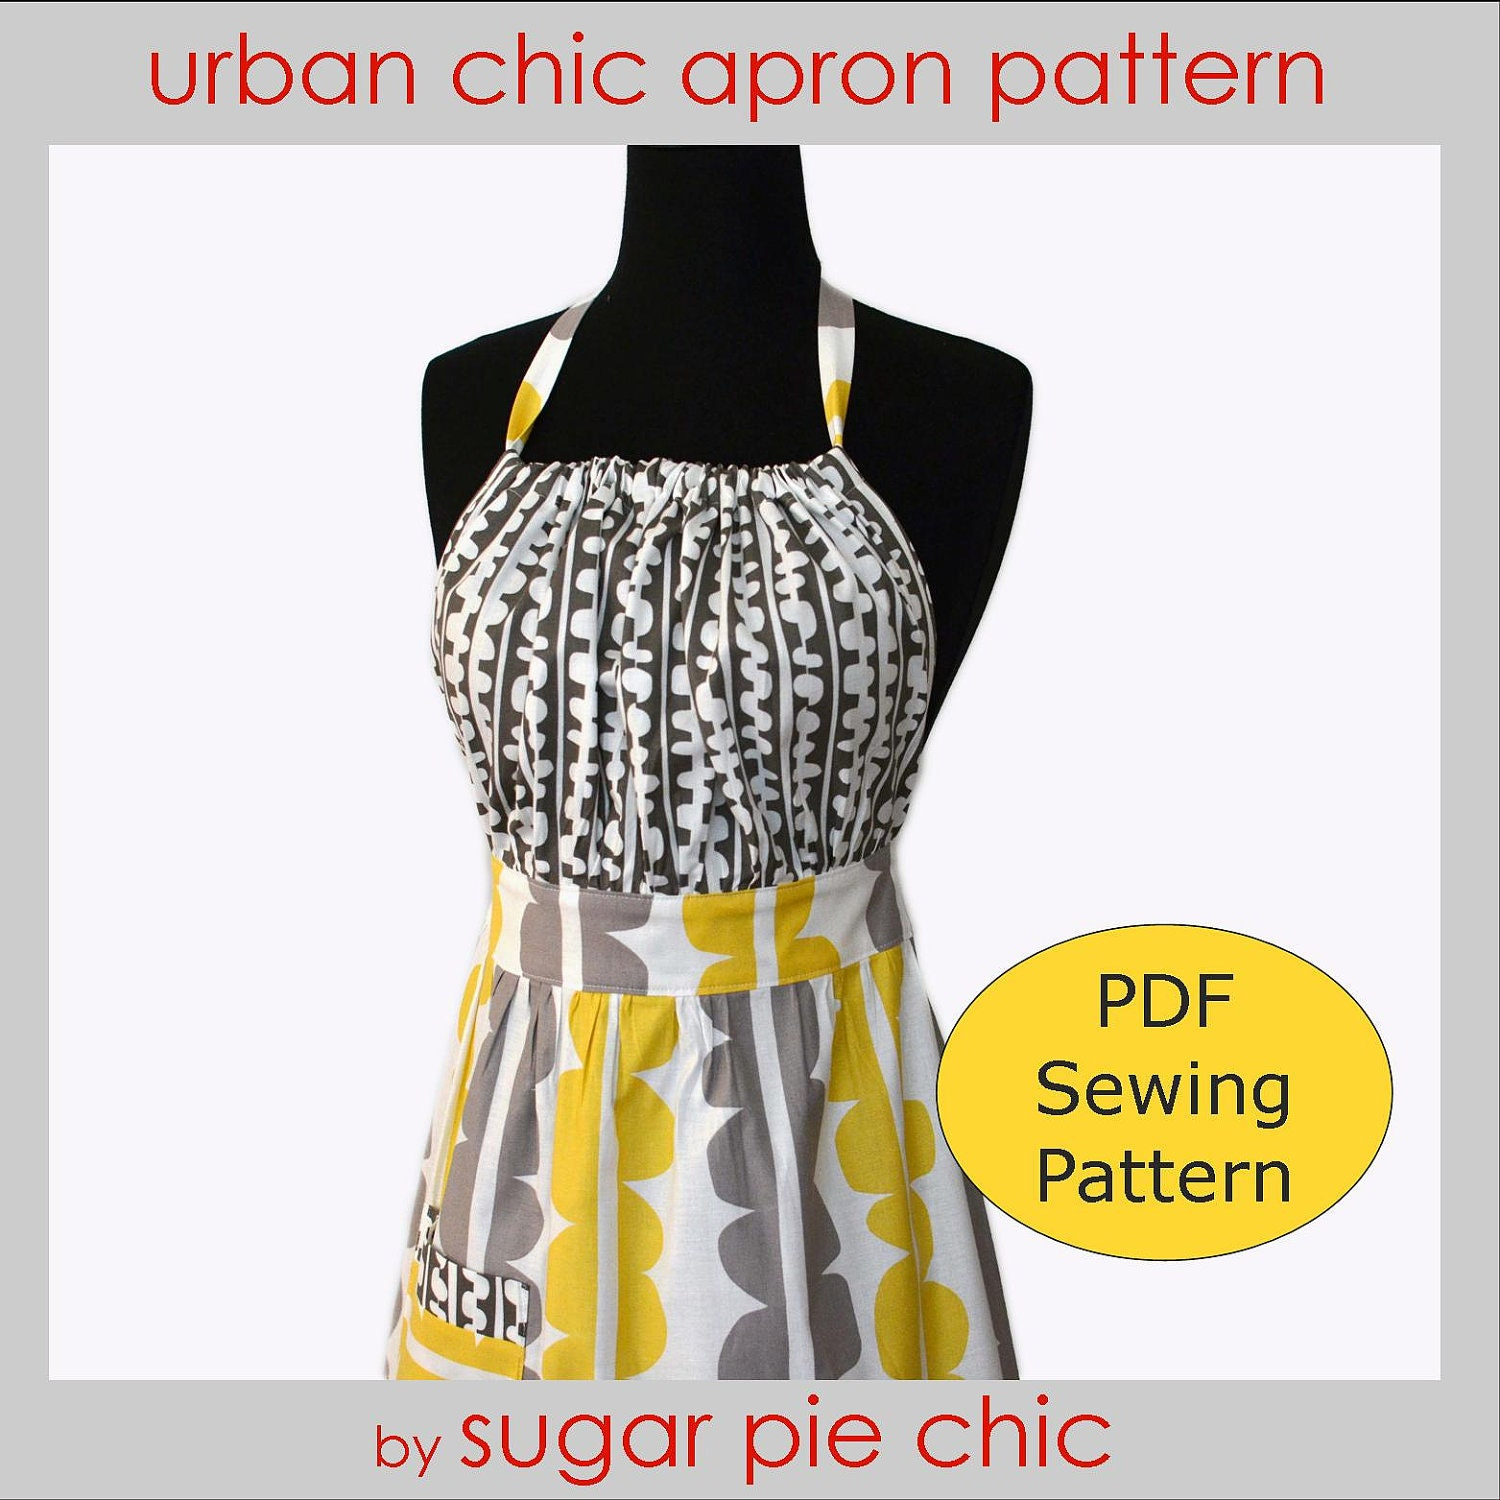 Quality Retro Apron Patterns for the Modern Gal by SugarPieChic